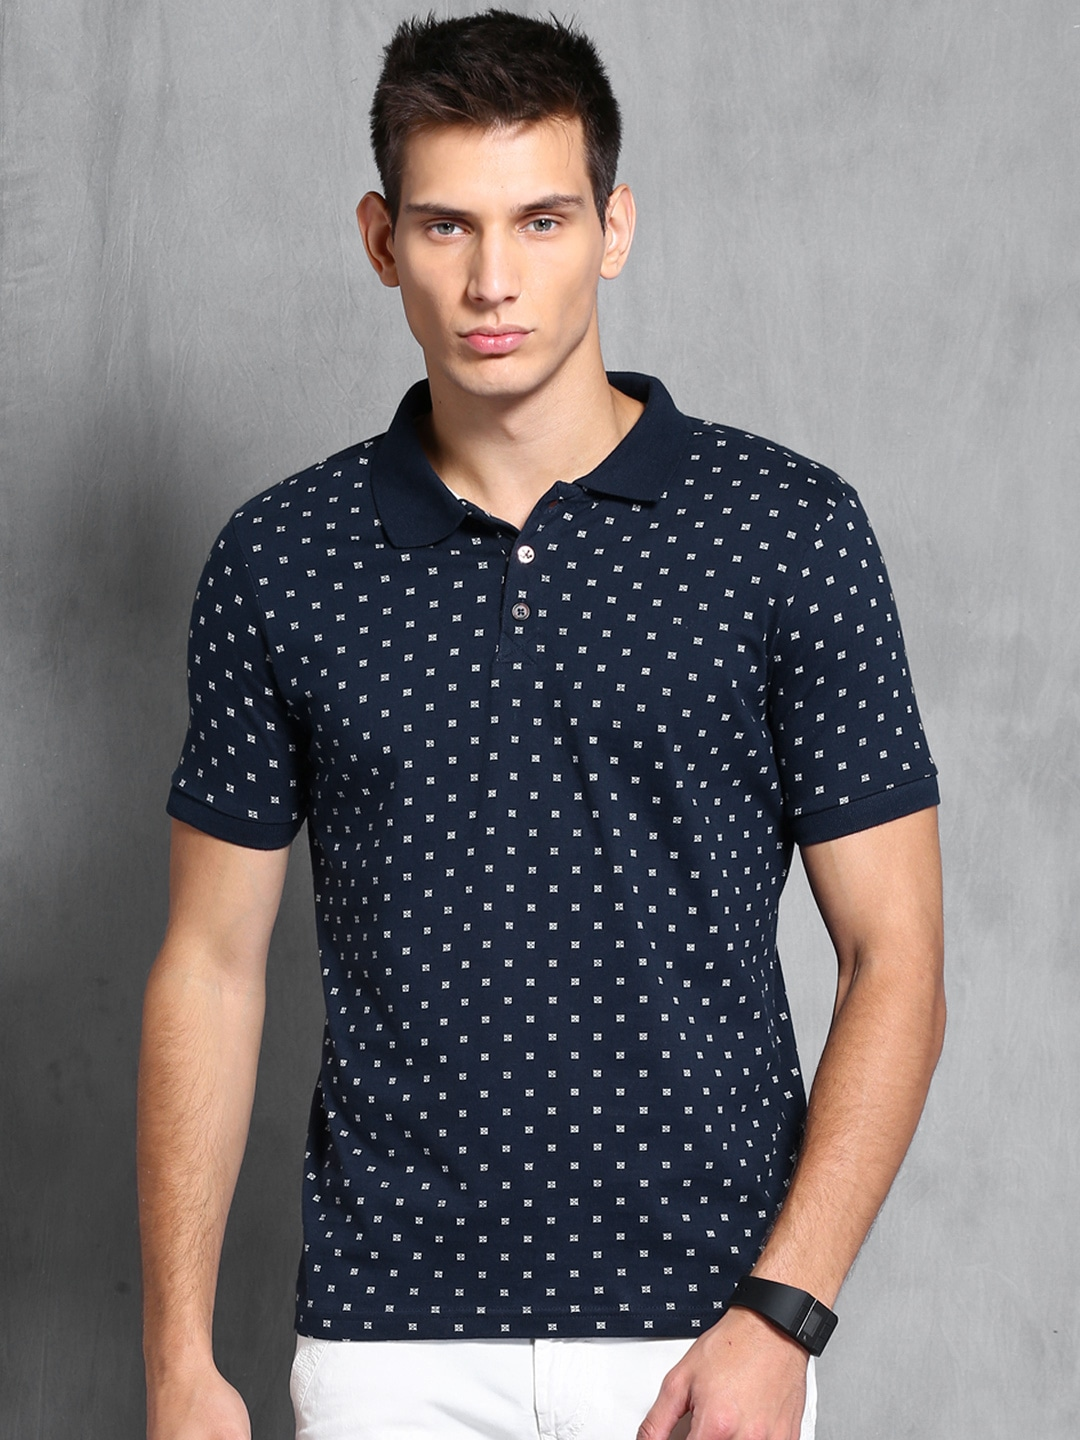 Design your t shirt myntra - Wrogn Navy Printed Polo T Shirt